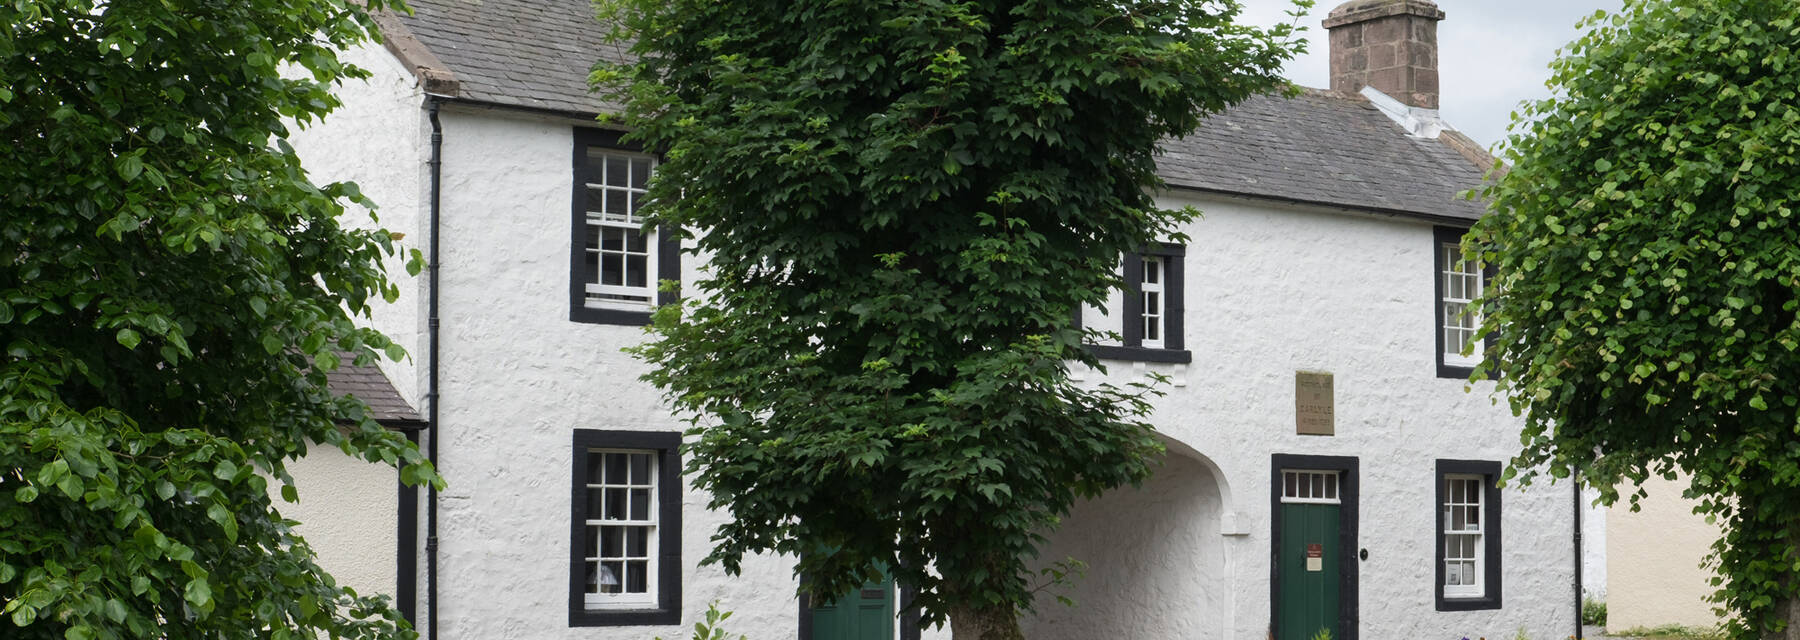 Exterior of Thomas Carlyle's birthplace (courtesy commons.wikimedia.org/wiki/User:DeFacto)